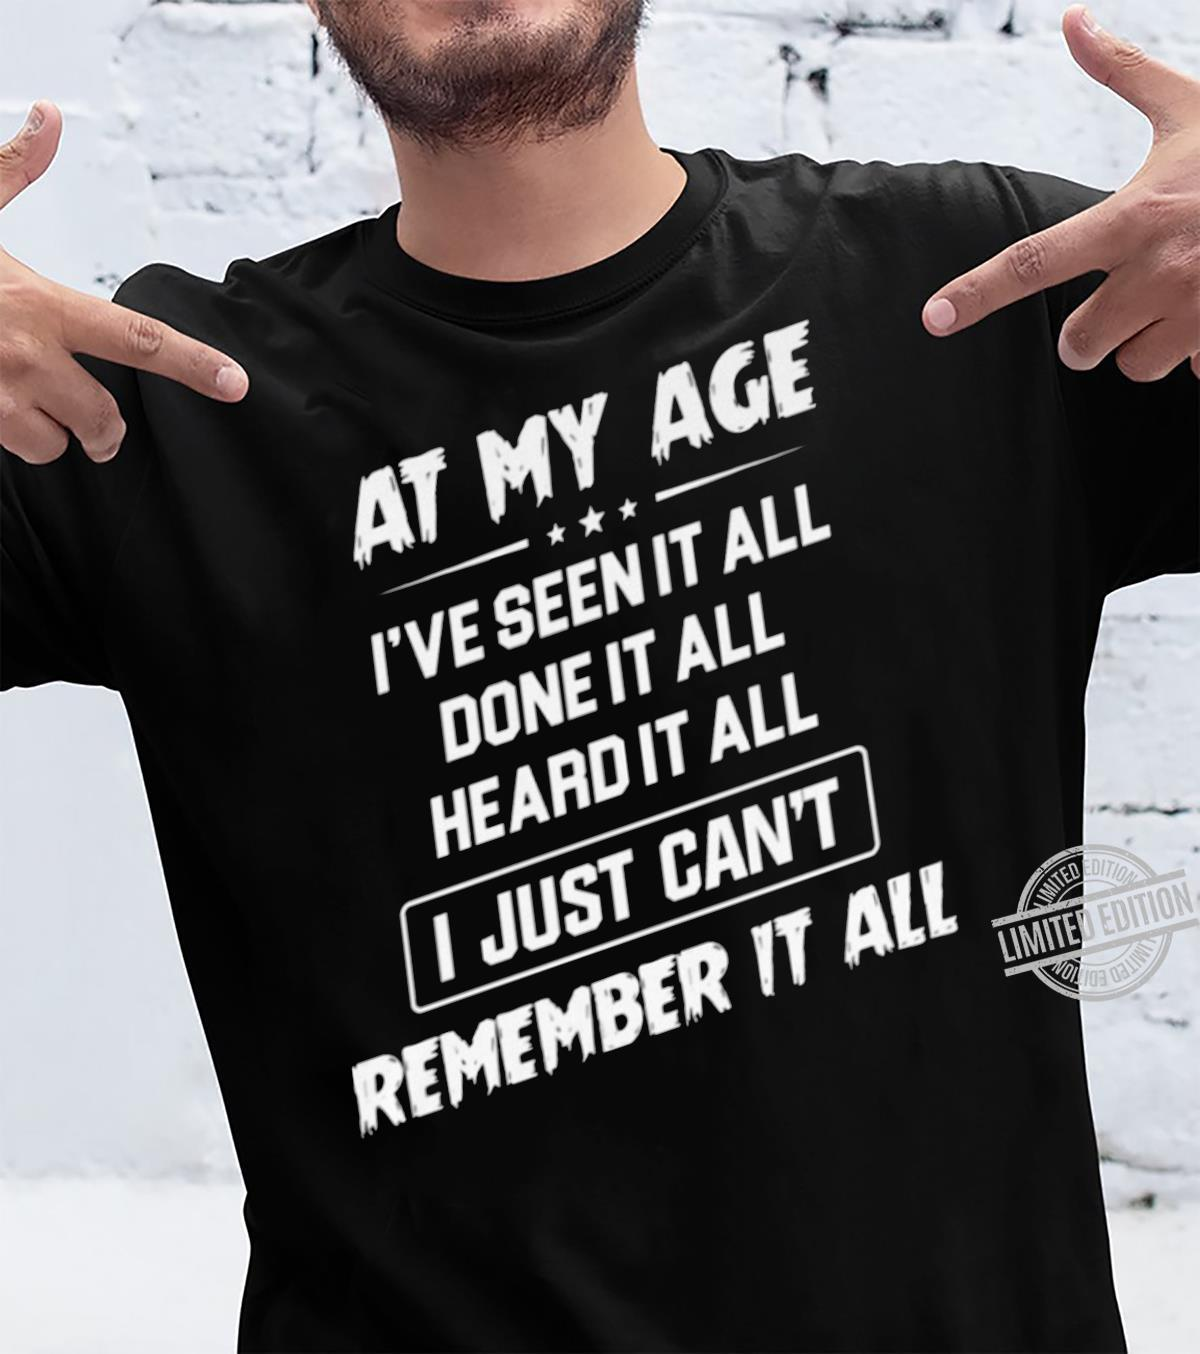 At My Age I've Seen It All Done It All Heard It All I Just Can't Remember It All Shirt unisex